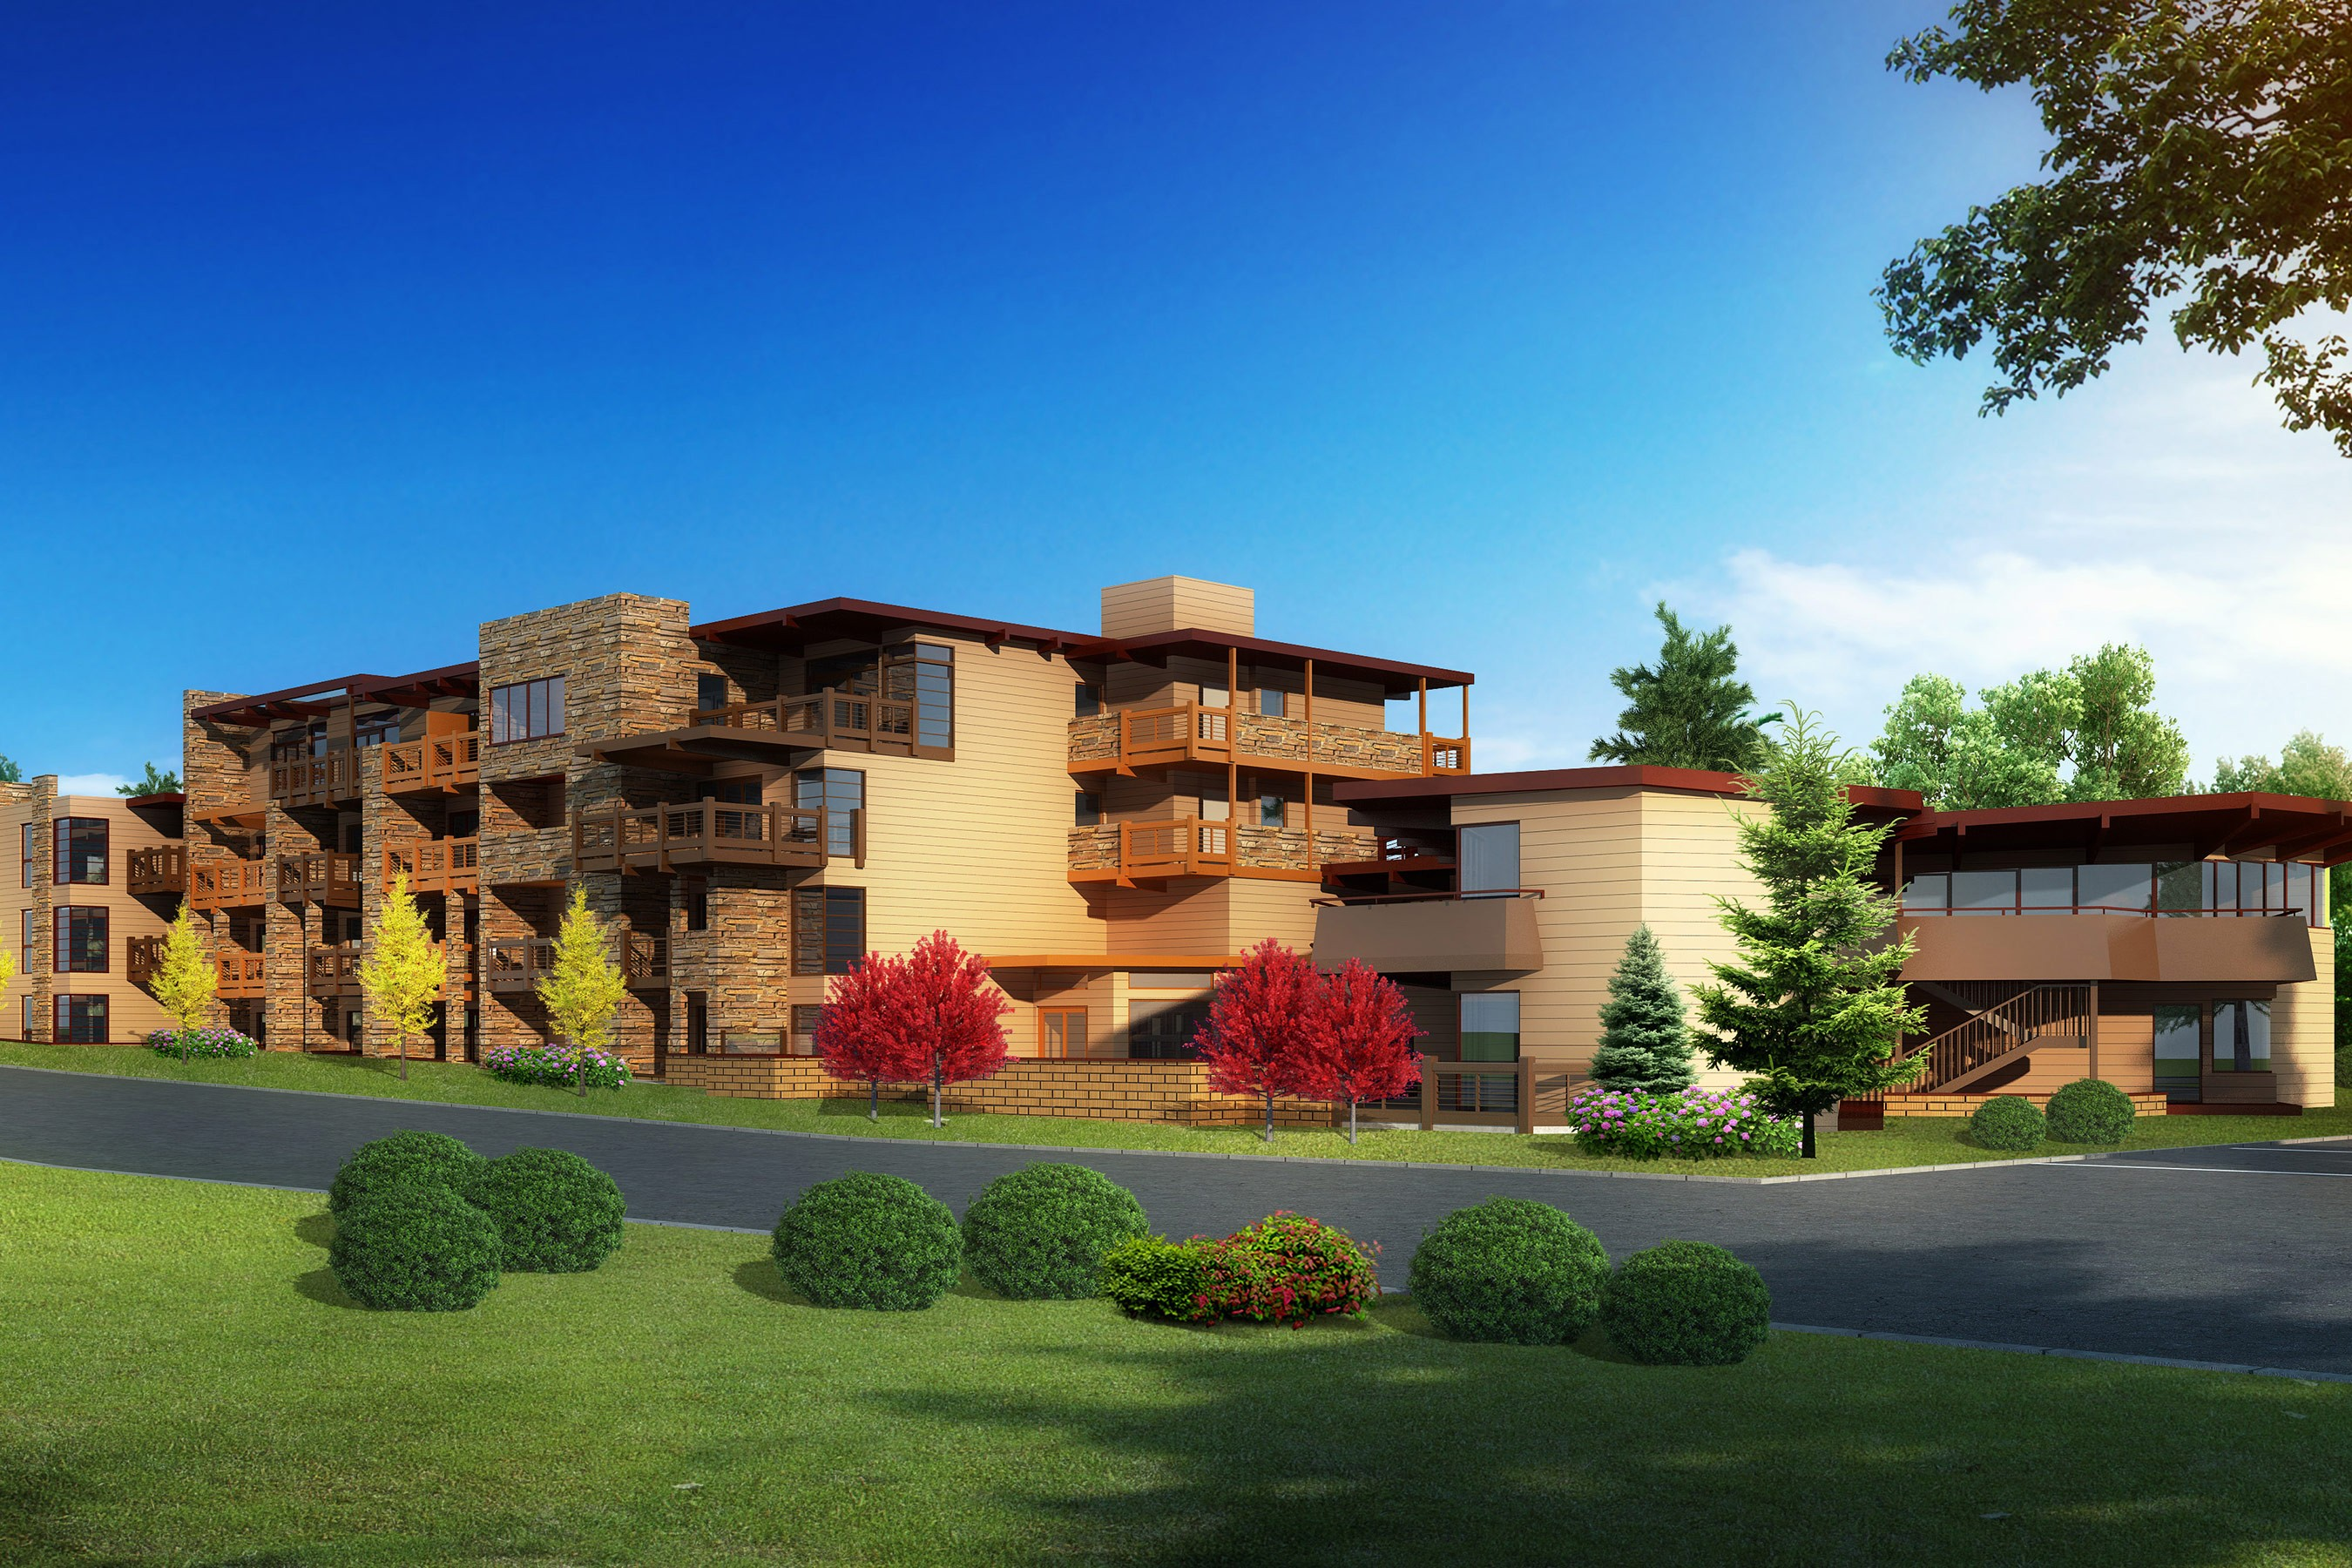 Condominium for Sale at Boomerang Lodge 500 W. Hopkins Avenue Unit 301 Aspen, Colorado, 81611 United States